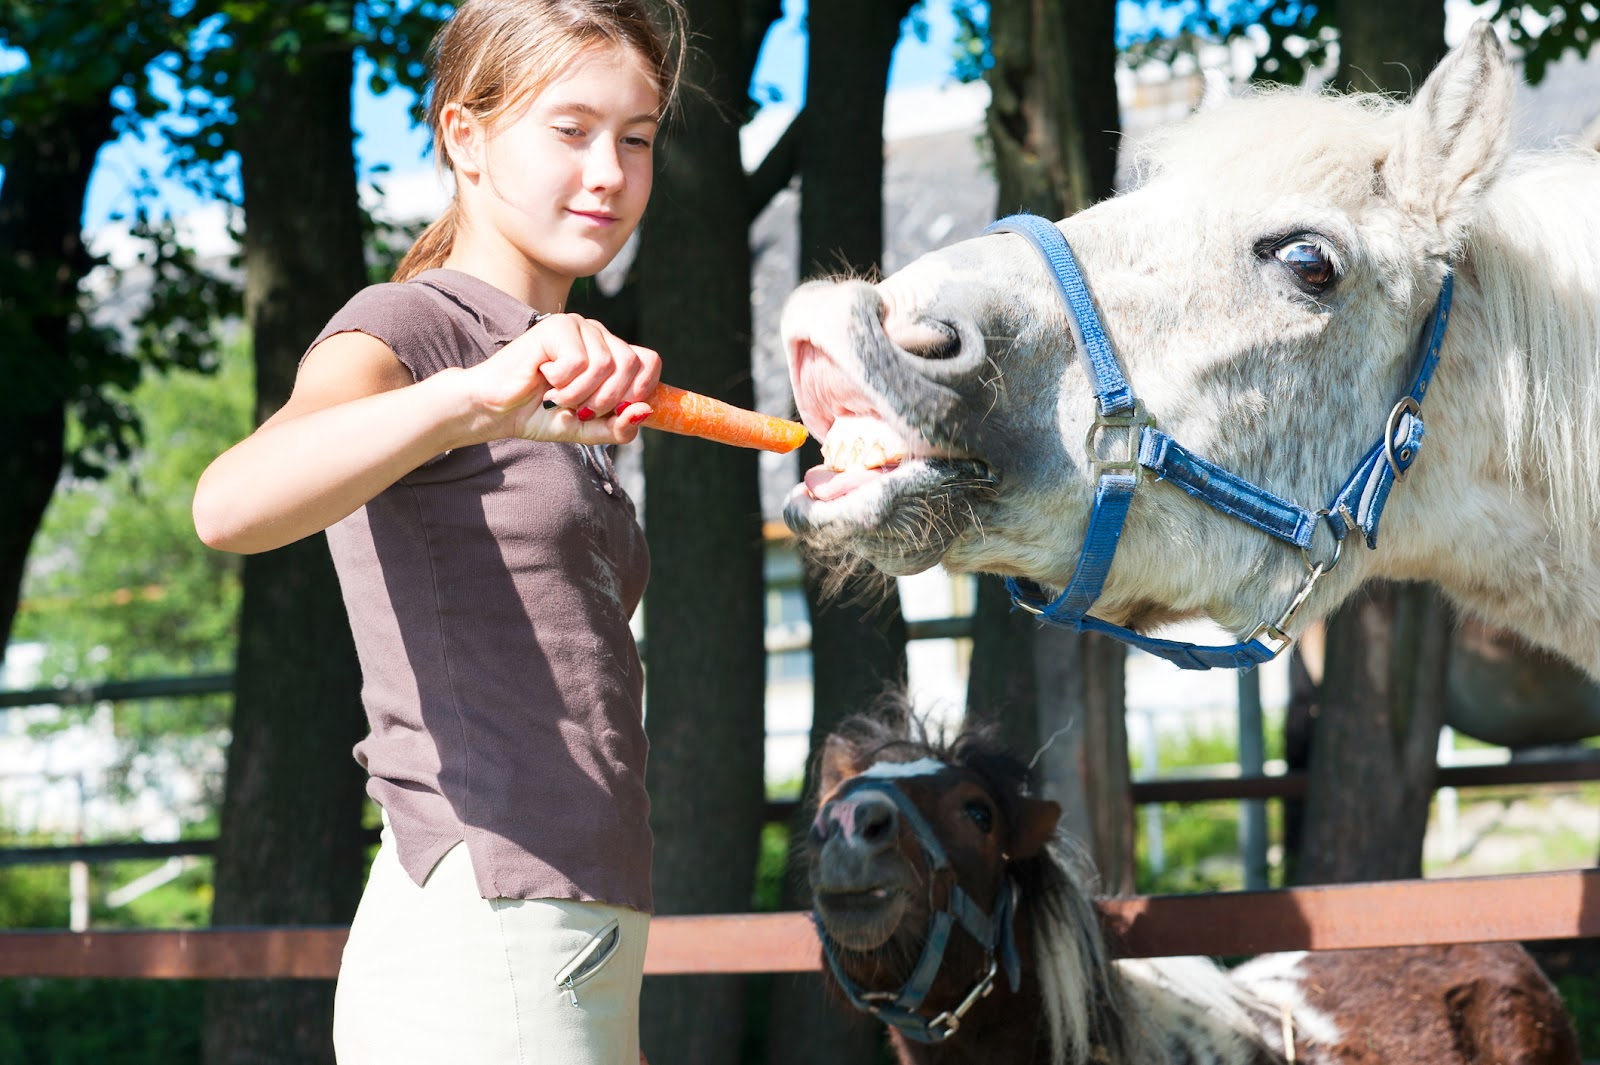 Teen girl feeding horse during equine therapy.